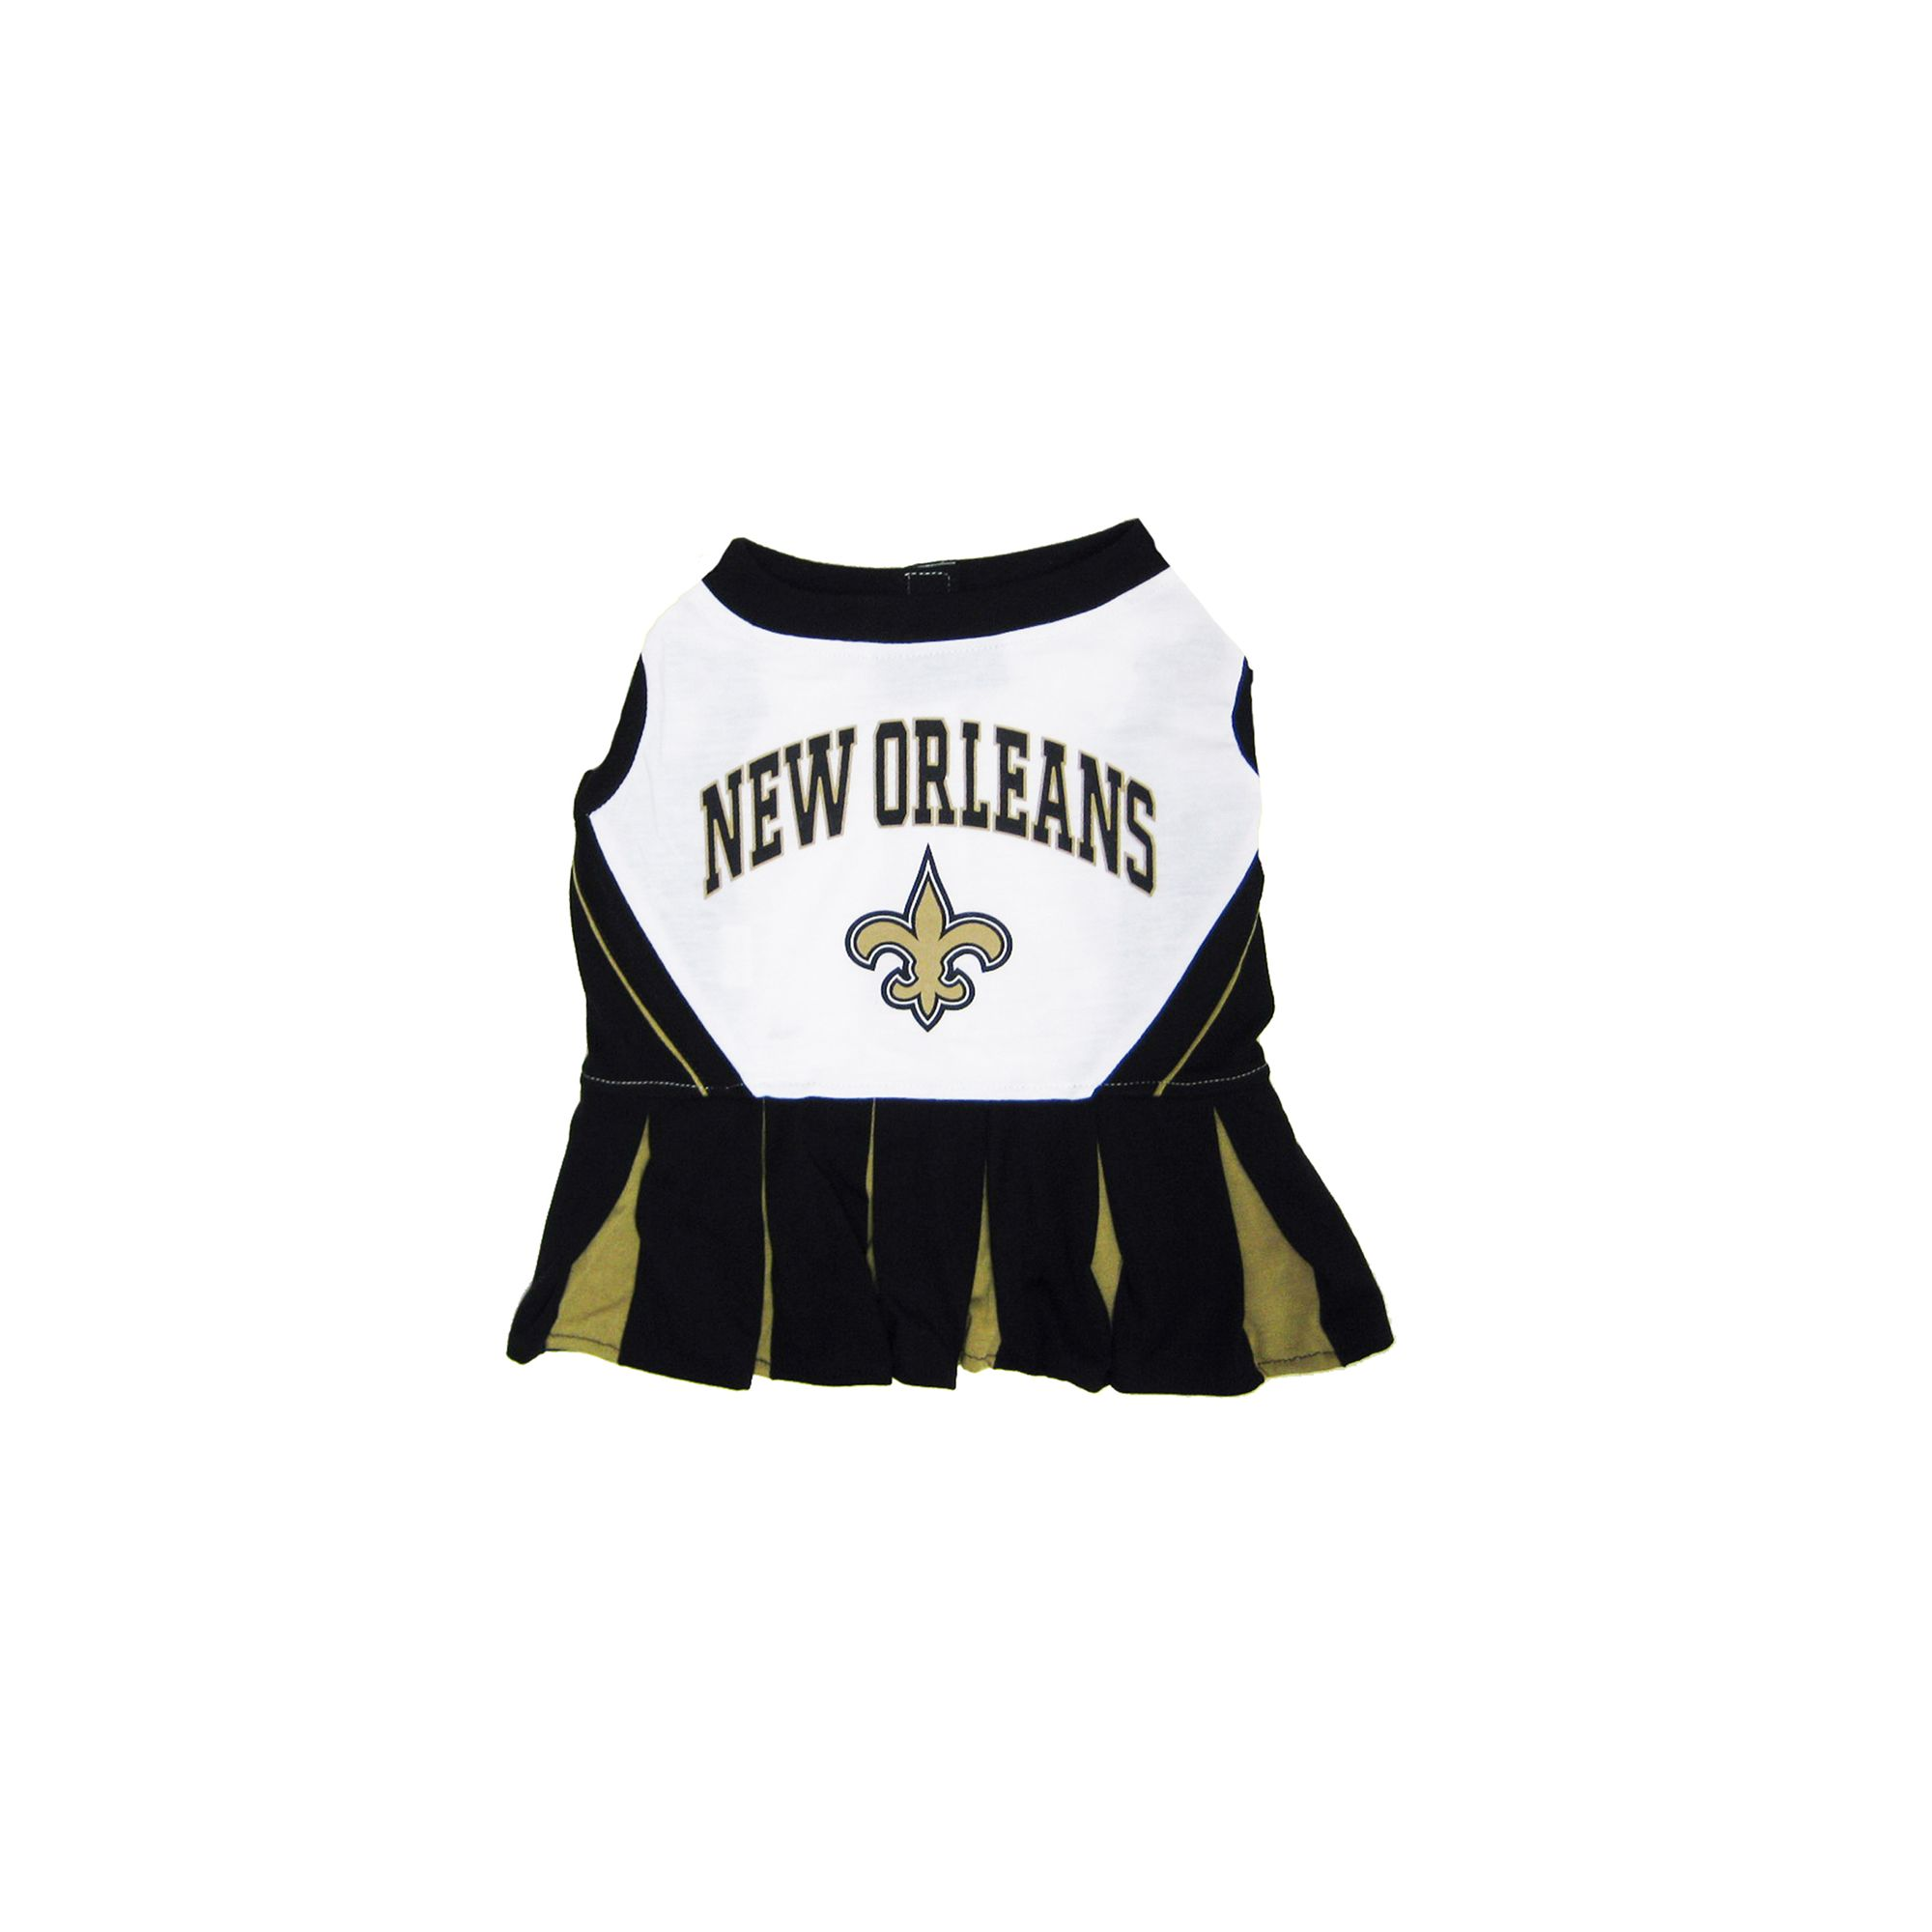 Tantra chair dimensions  New Orleans Saints NFL Cheerleader Uniform in   Products